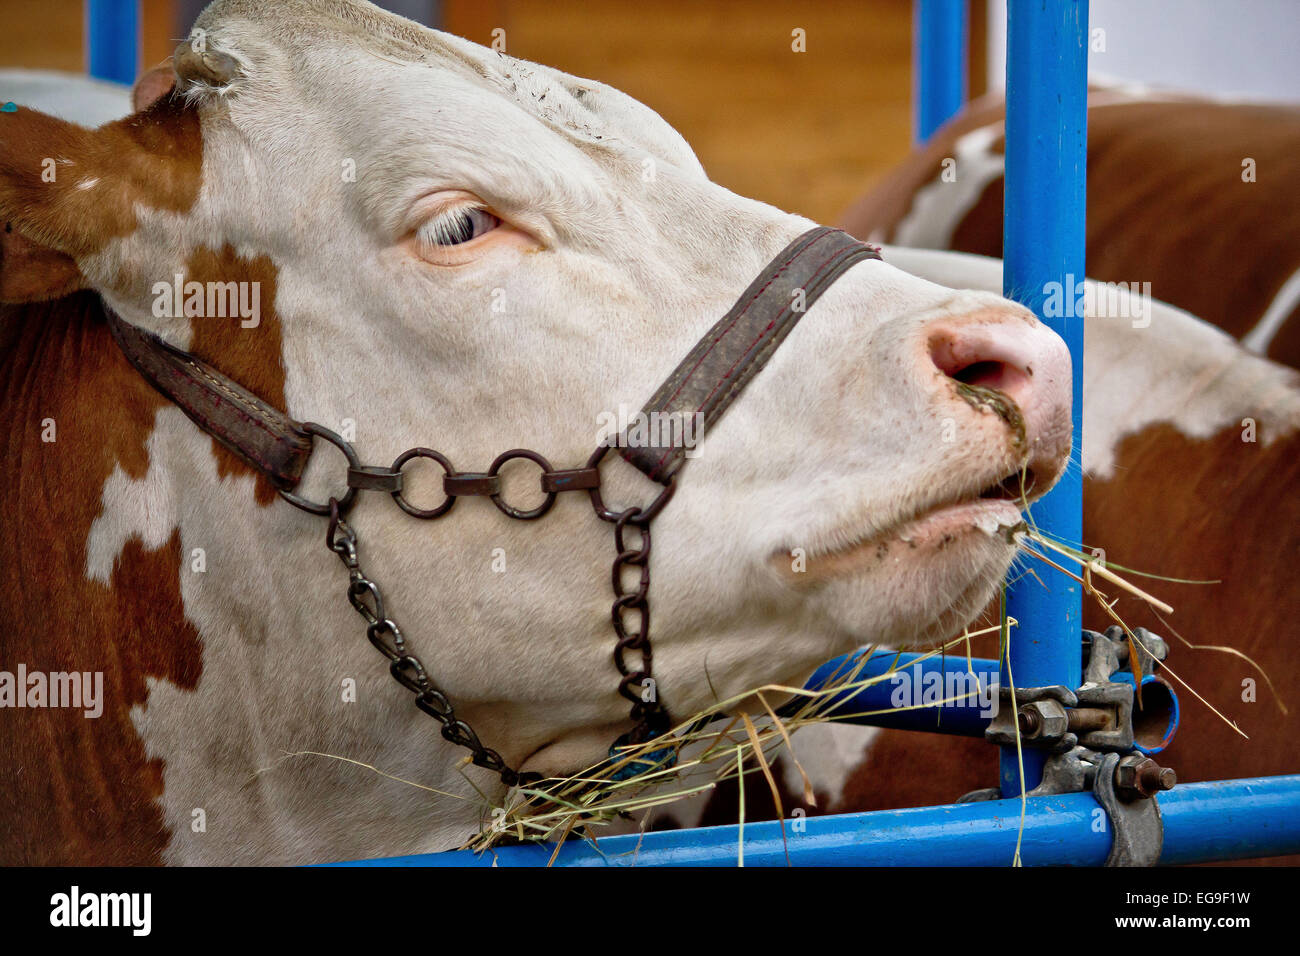 Simmental bull portrait in barn, animal farm - Stock Image